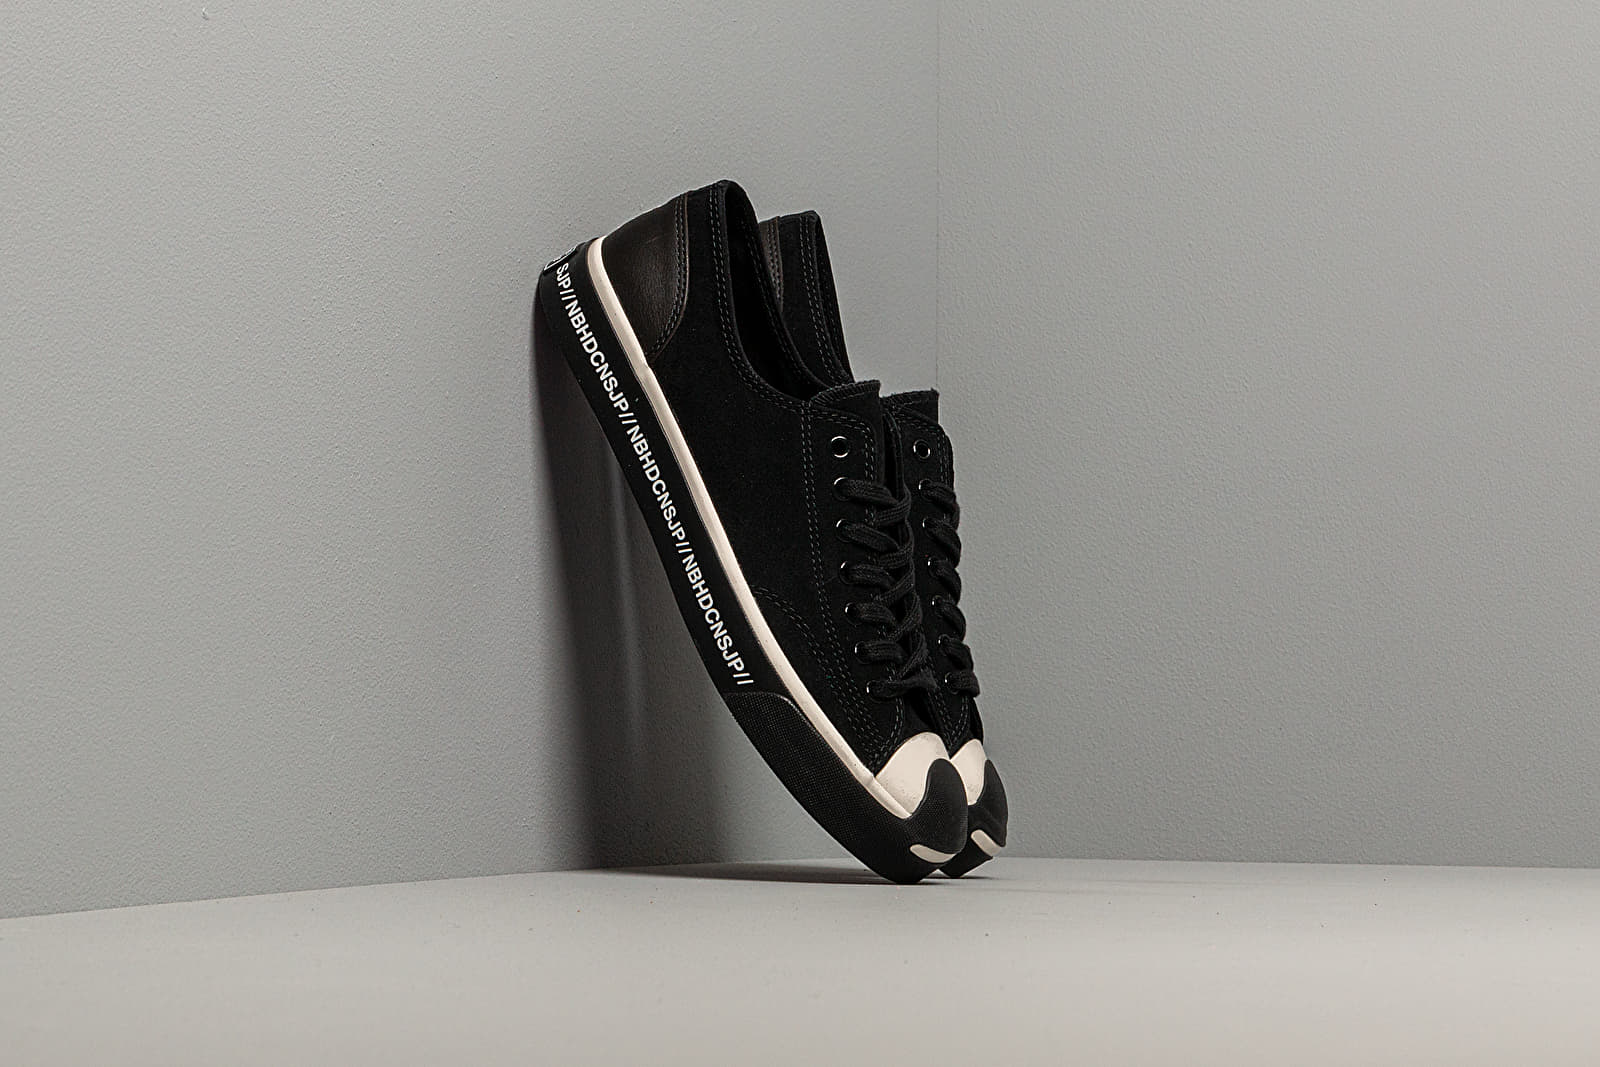 Converse x Neighborhood Jack Purcell OX